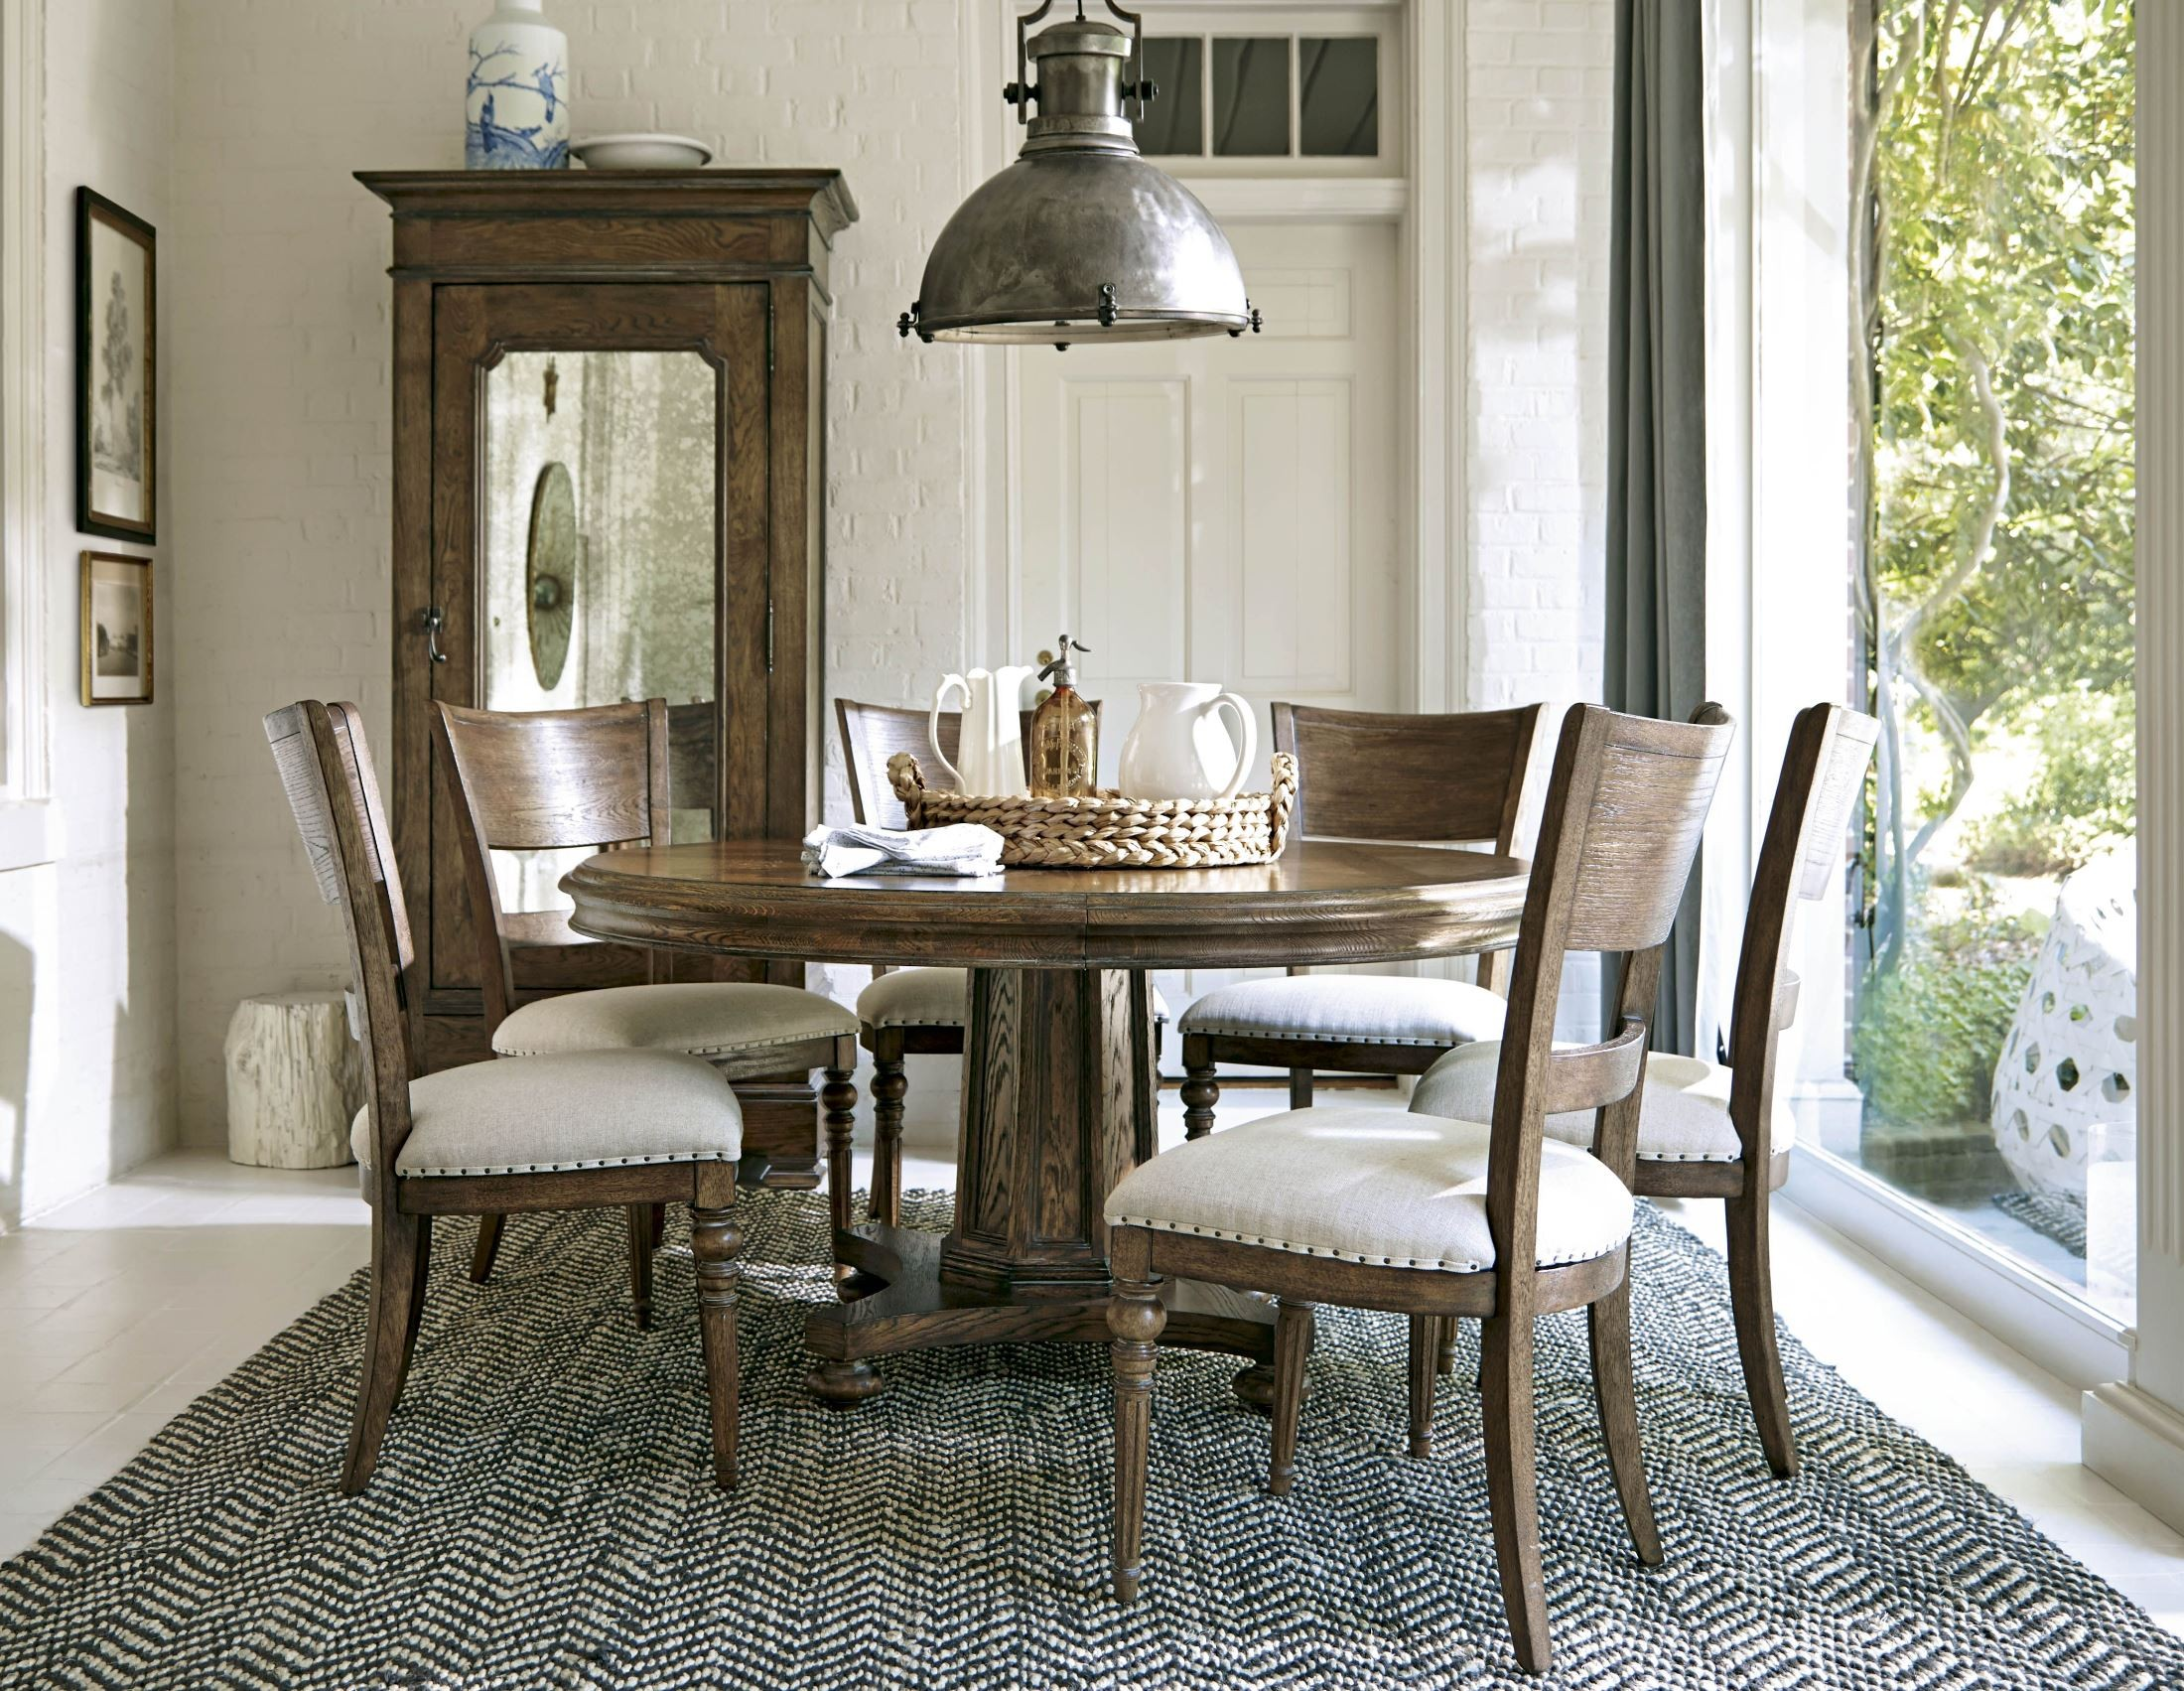 New Bohemian Round Dining Room Set From Universal 450657 Coleman